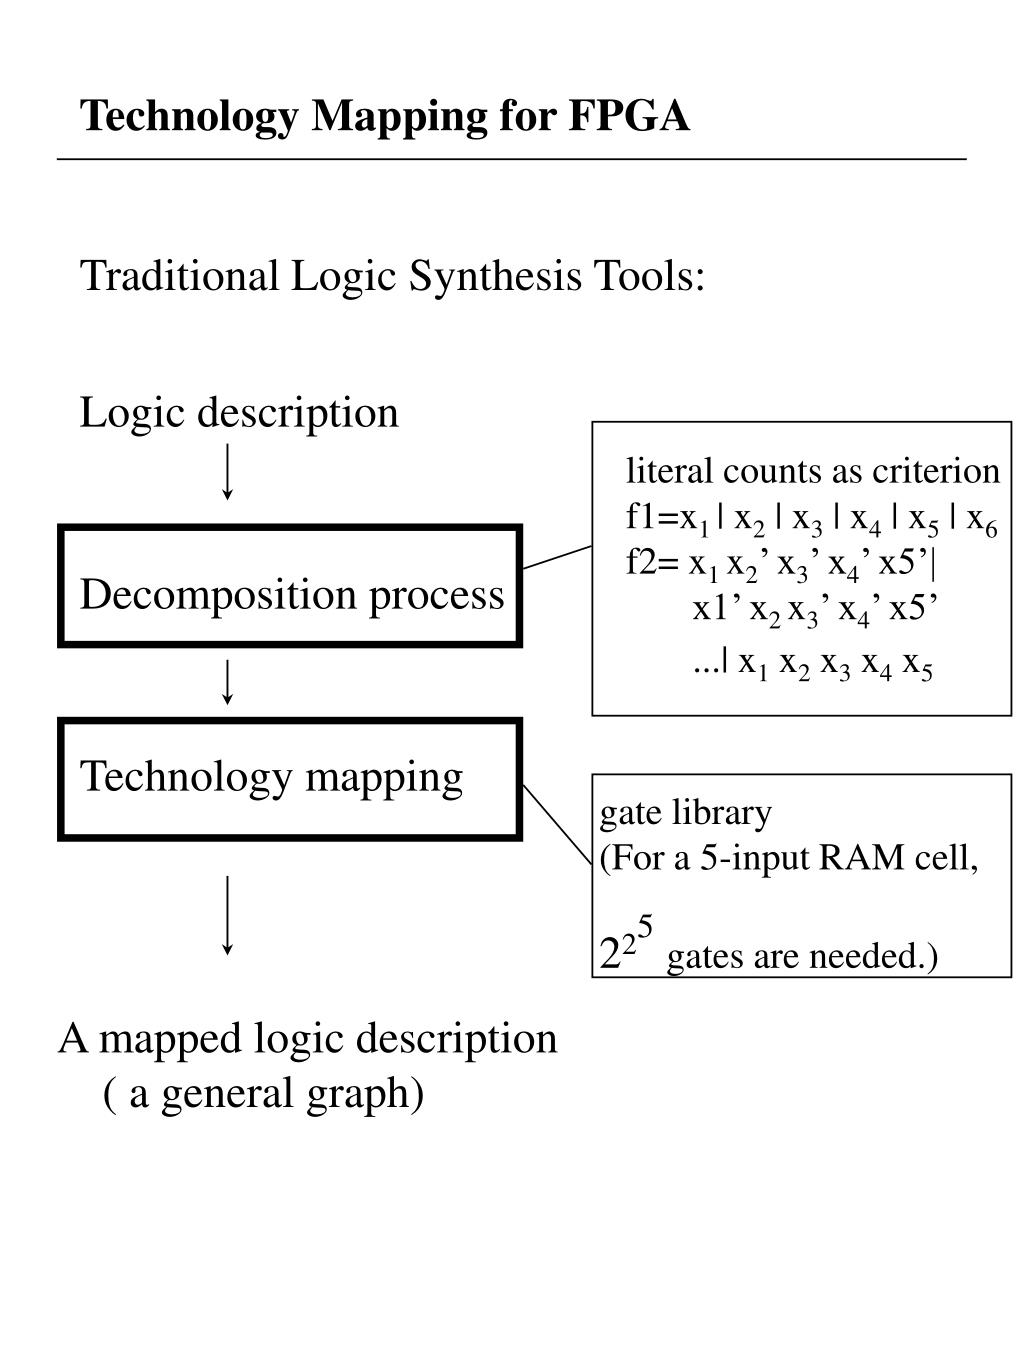 Technology Mapping for FPGA